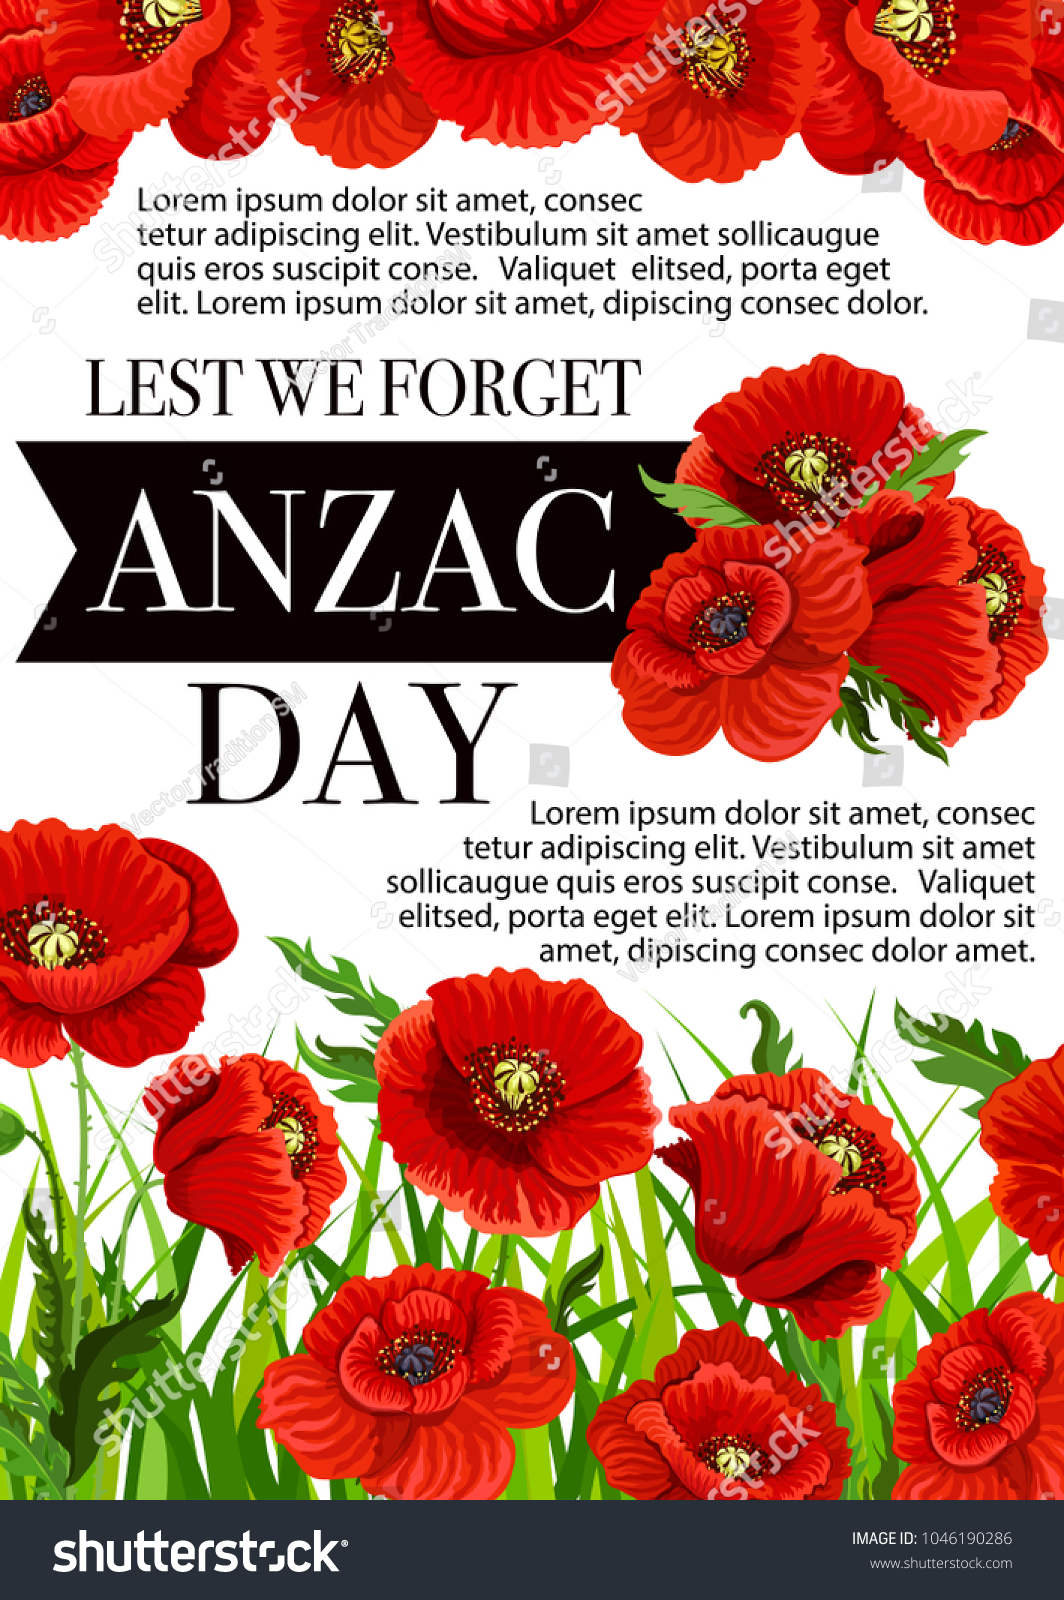 Anzac Day Lest We Forget Greeting Stock Vector Royalty Free